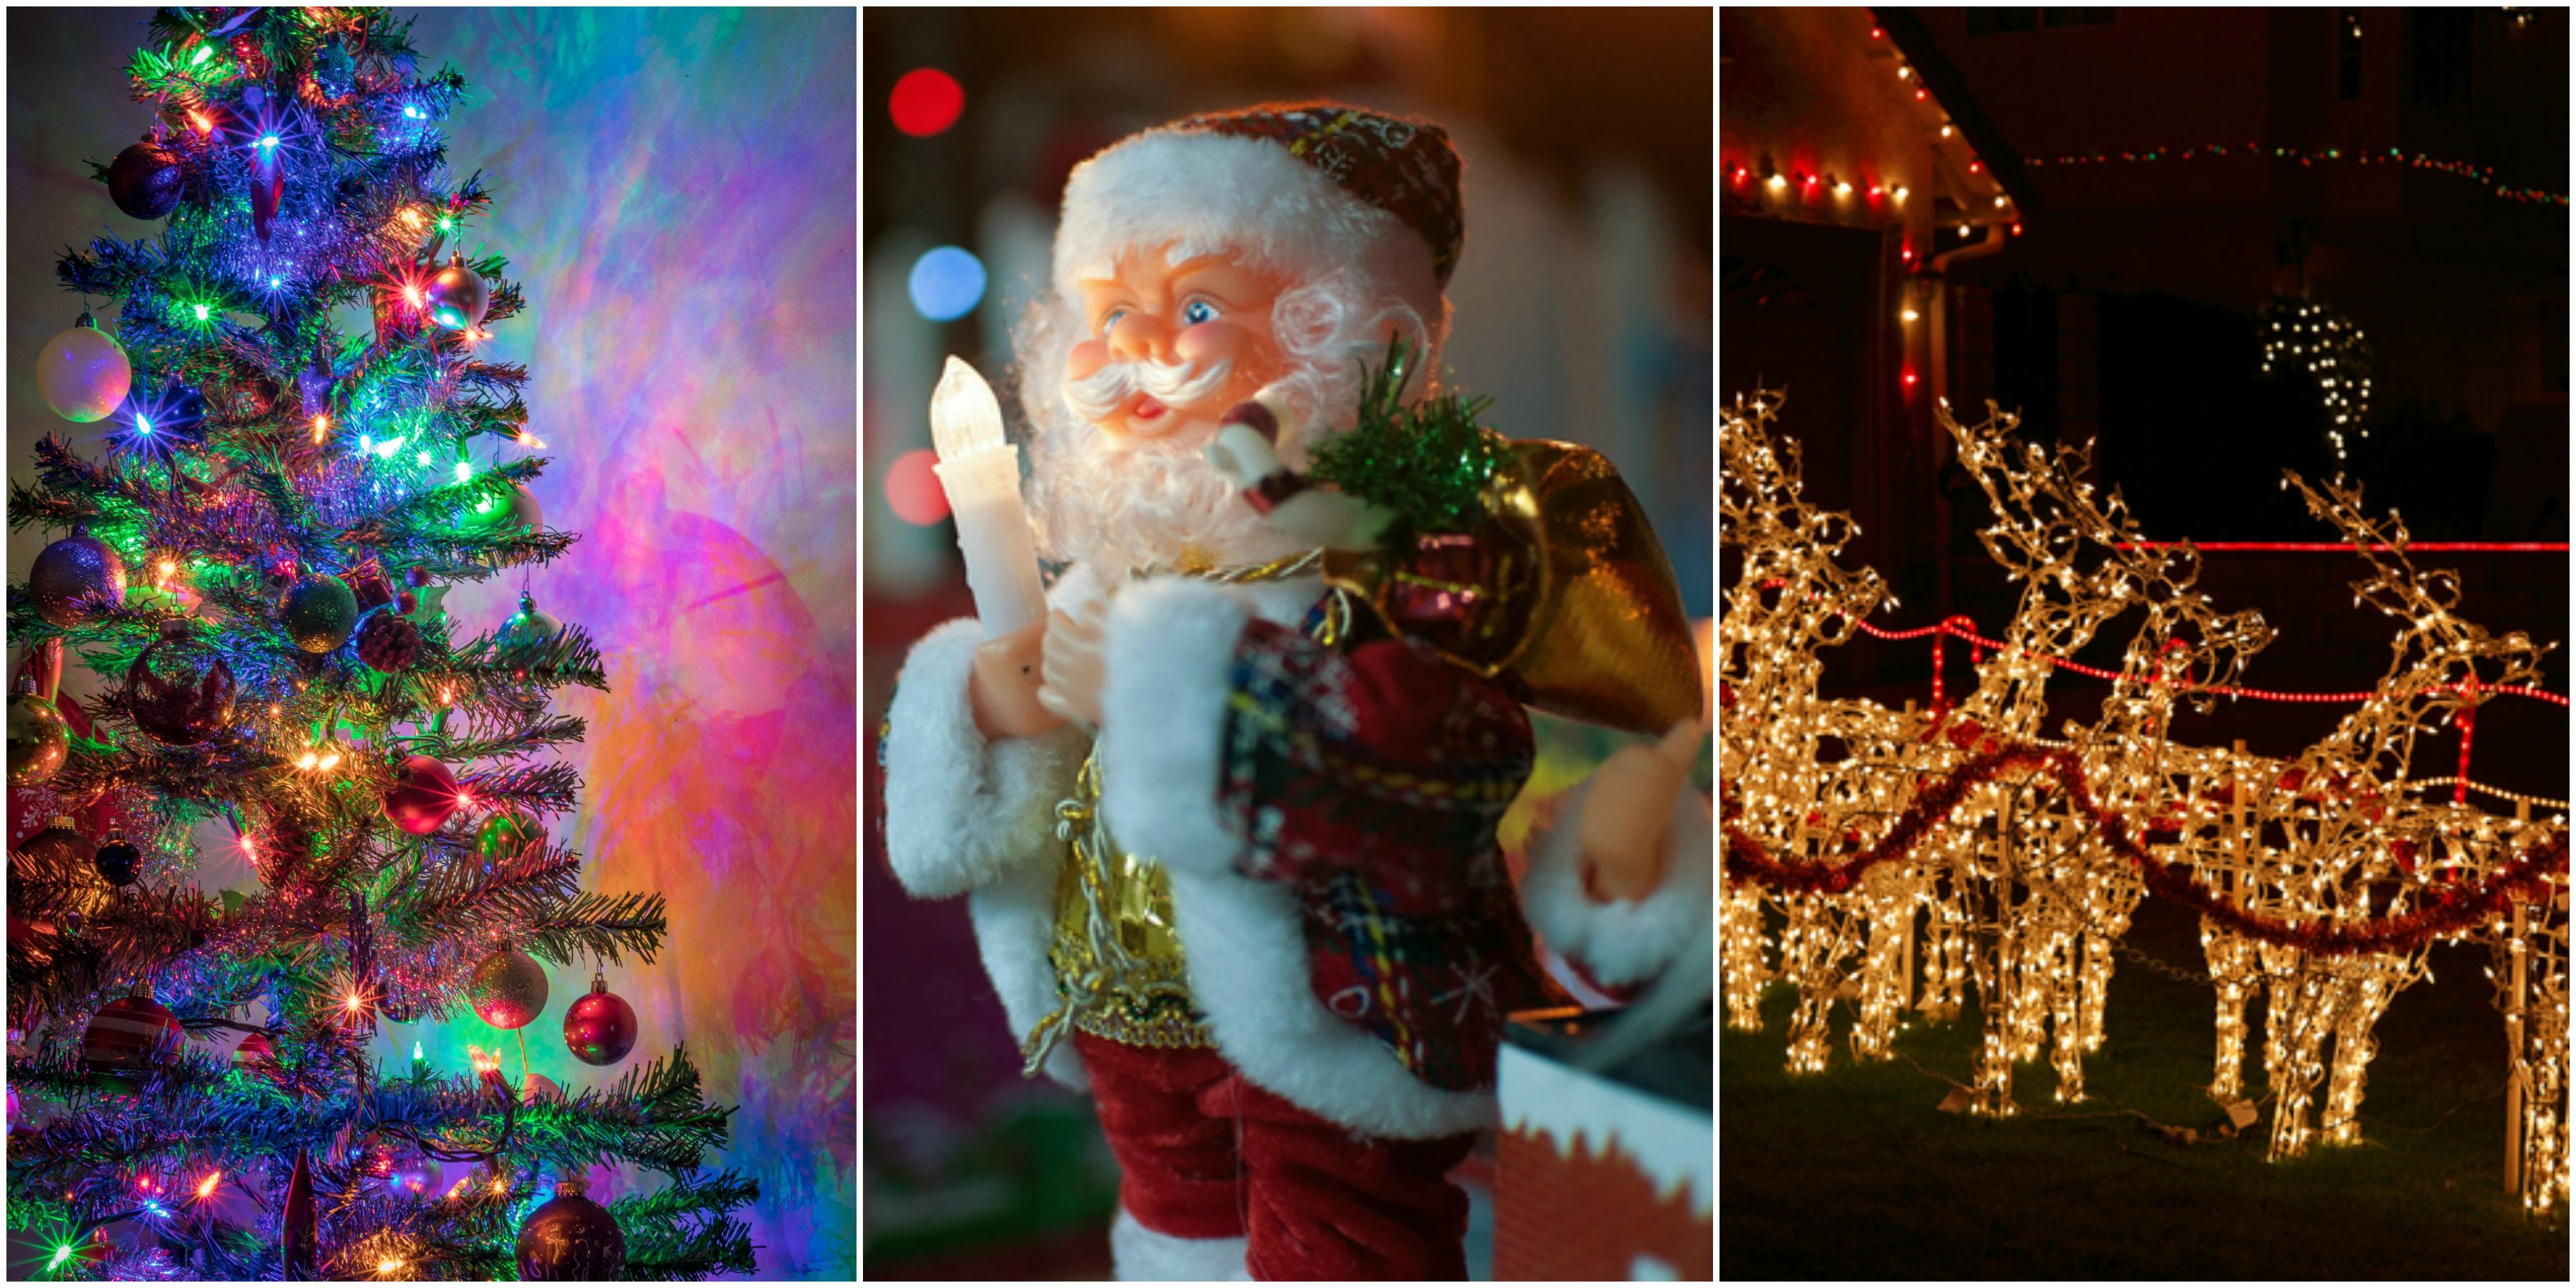 These 5 Christmas decorations can reduce your property's value and selling potential